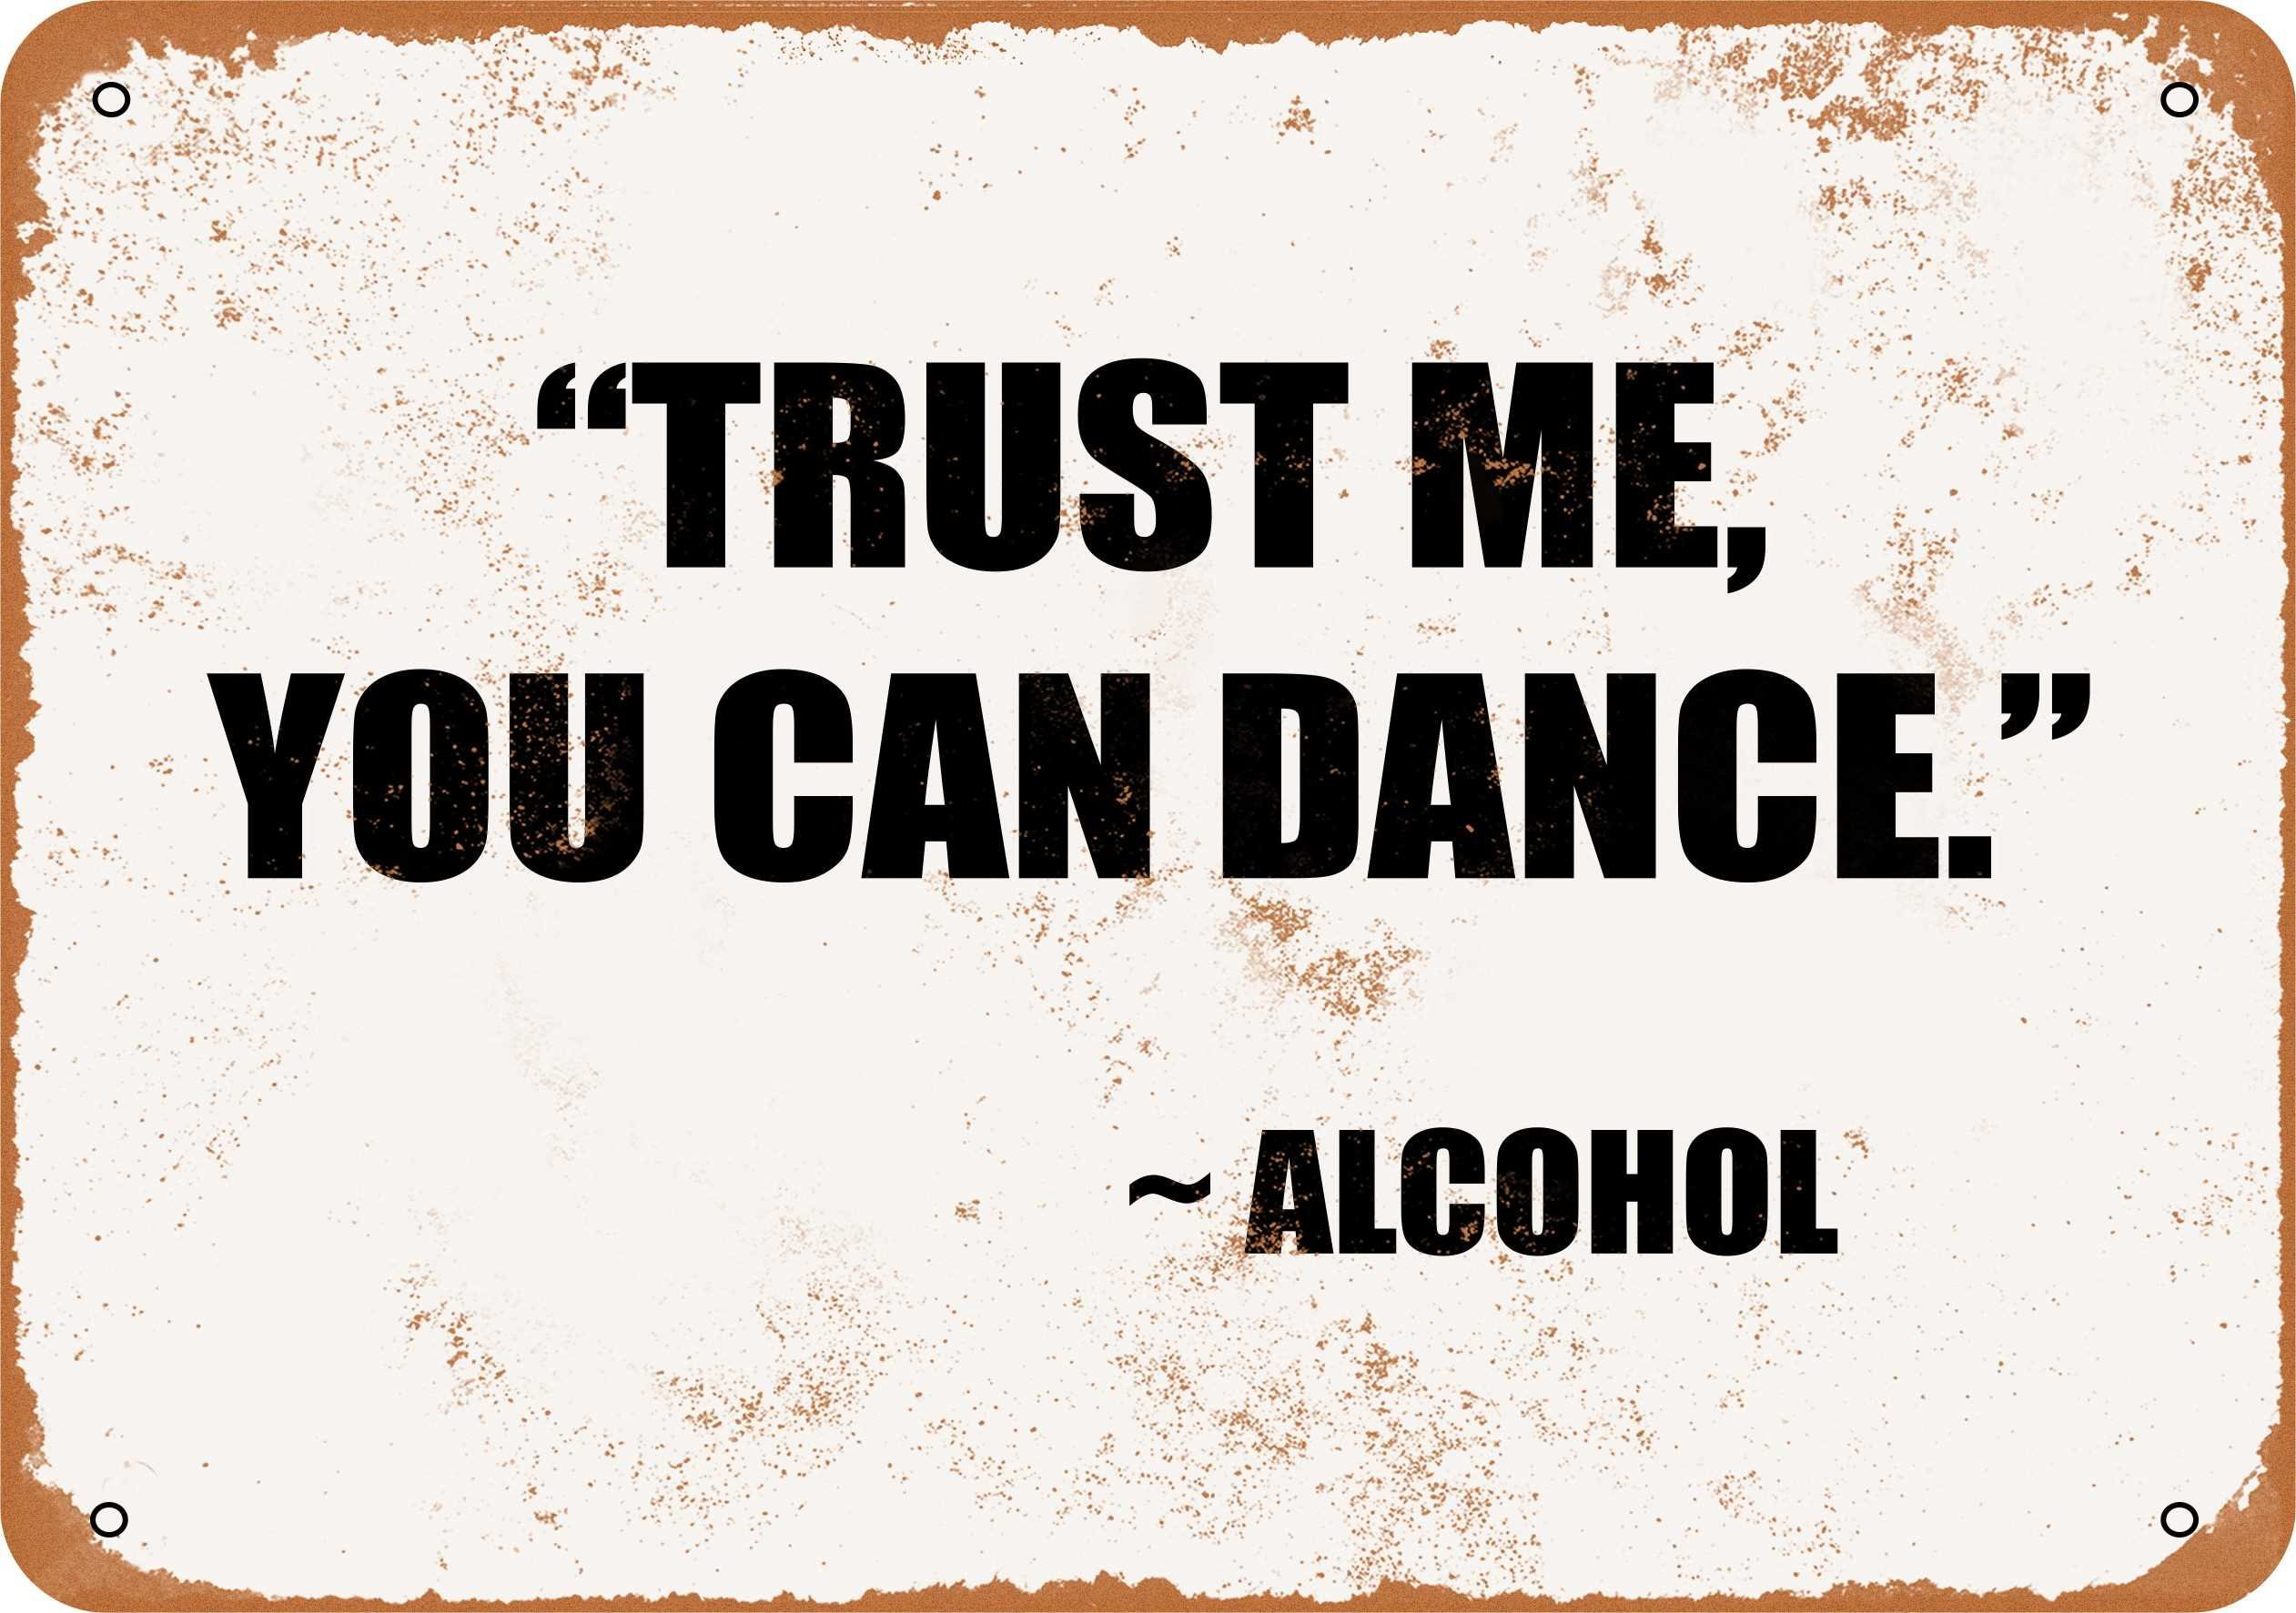 Wall-Color 9 x 12 METAL SIGN - TRUST ME, YOU CAN DANCE. - ALCOHOL - Vintage Look